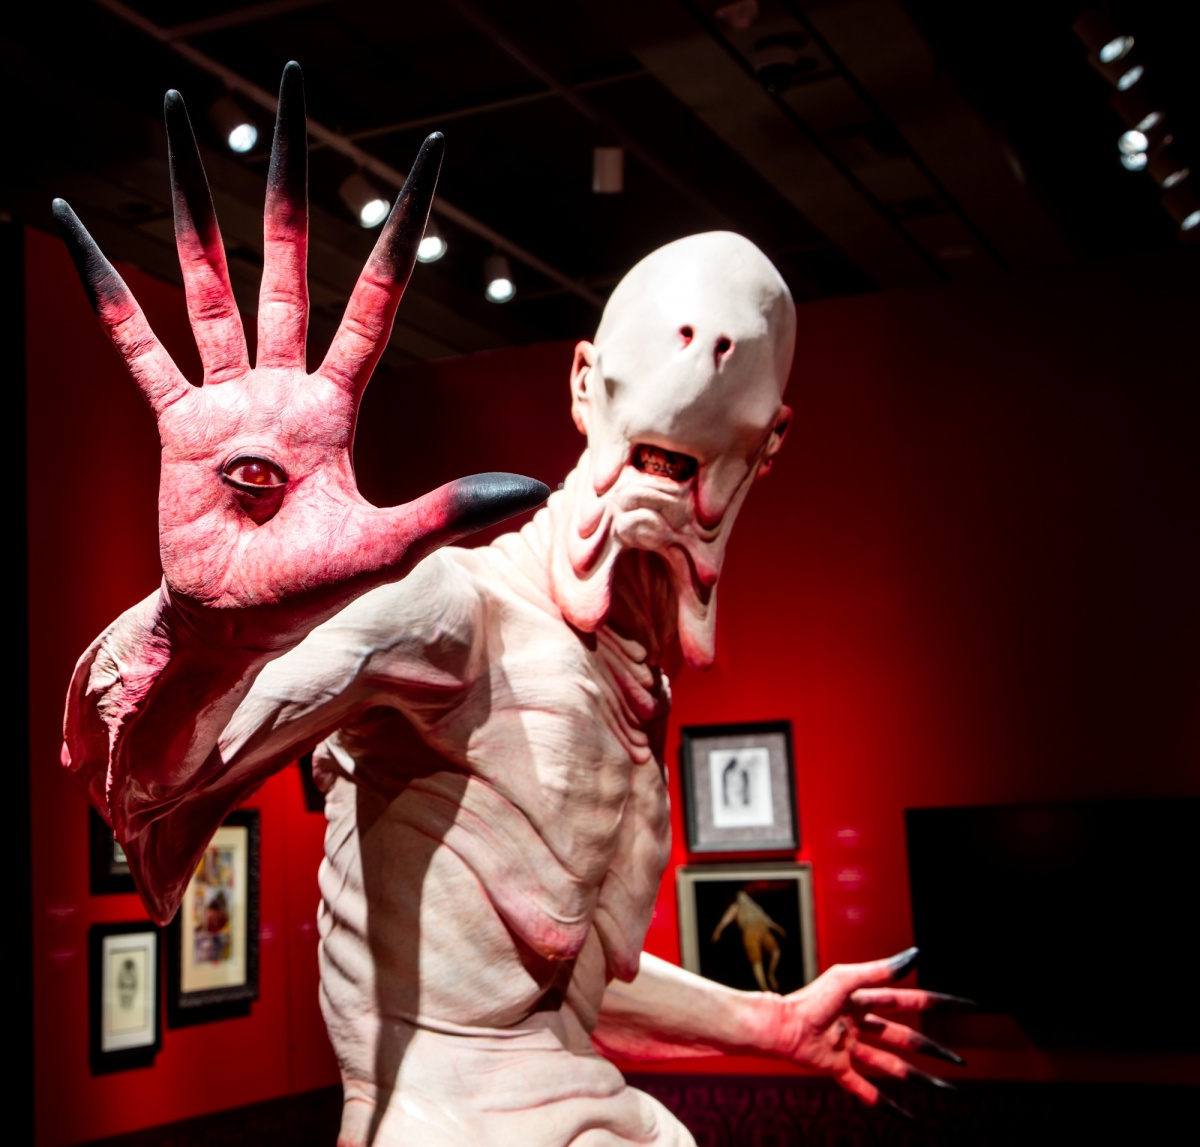 the pale man scuplture from pan's labyrinth